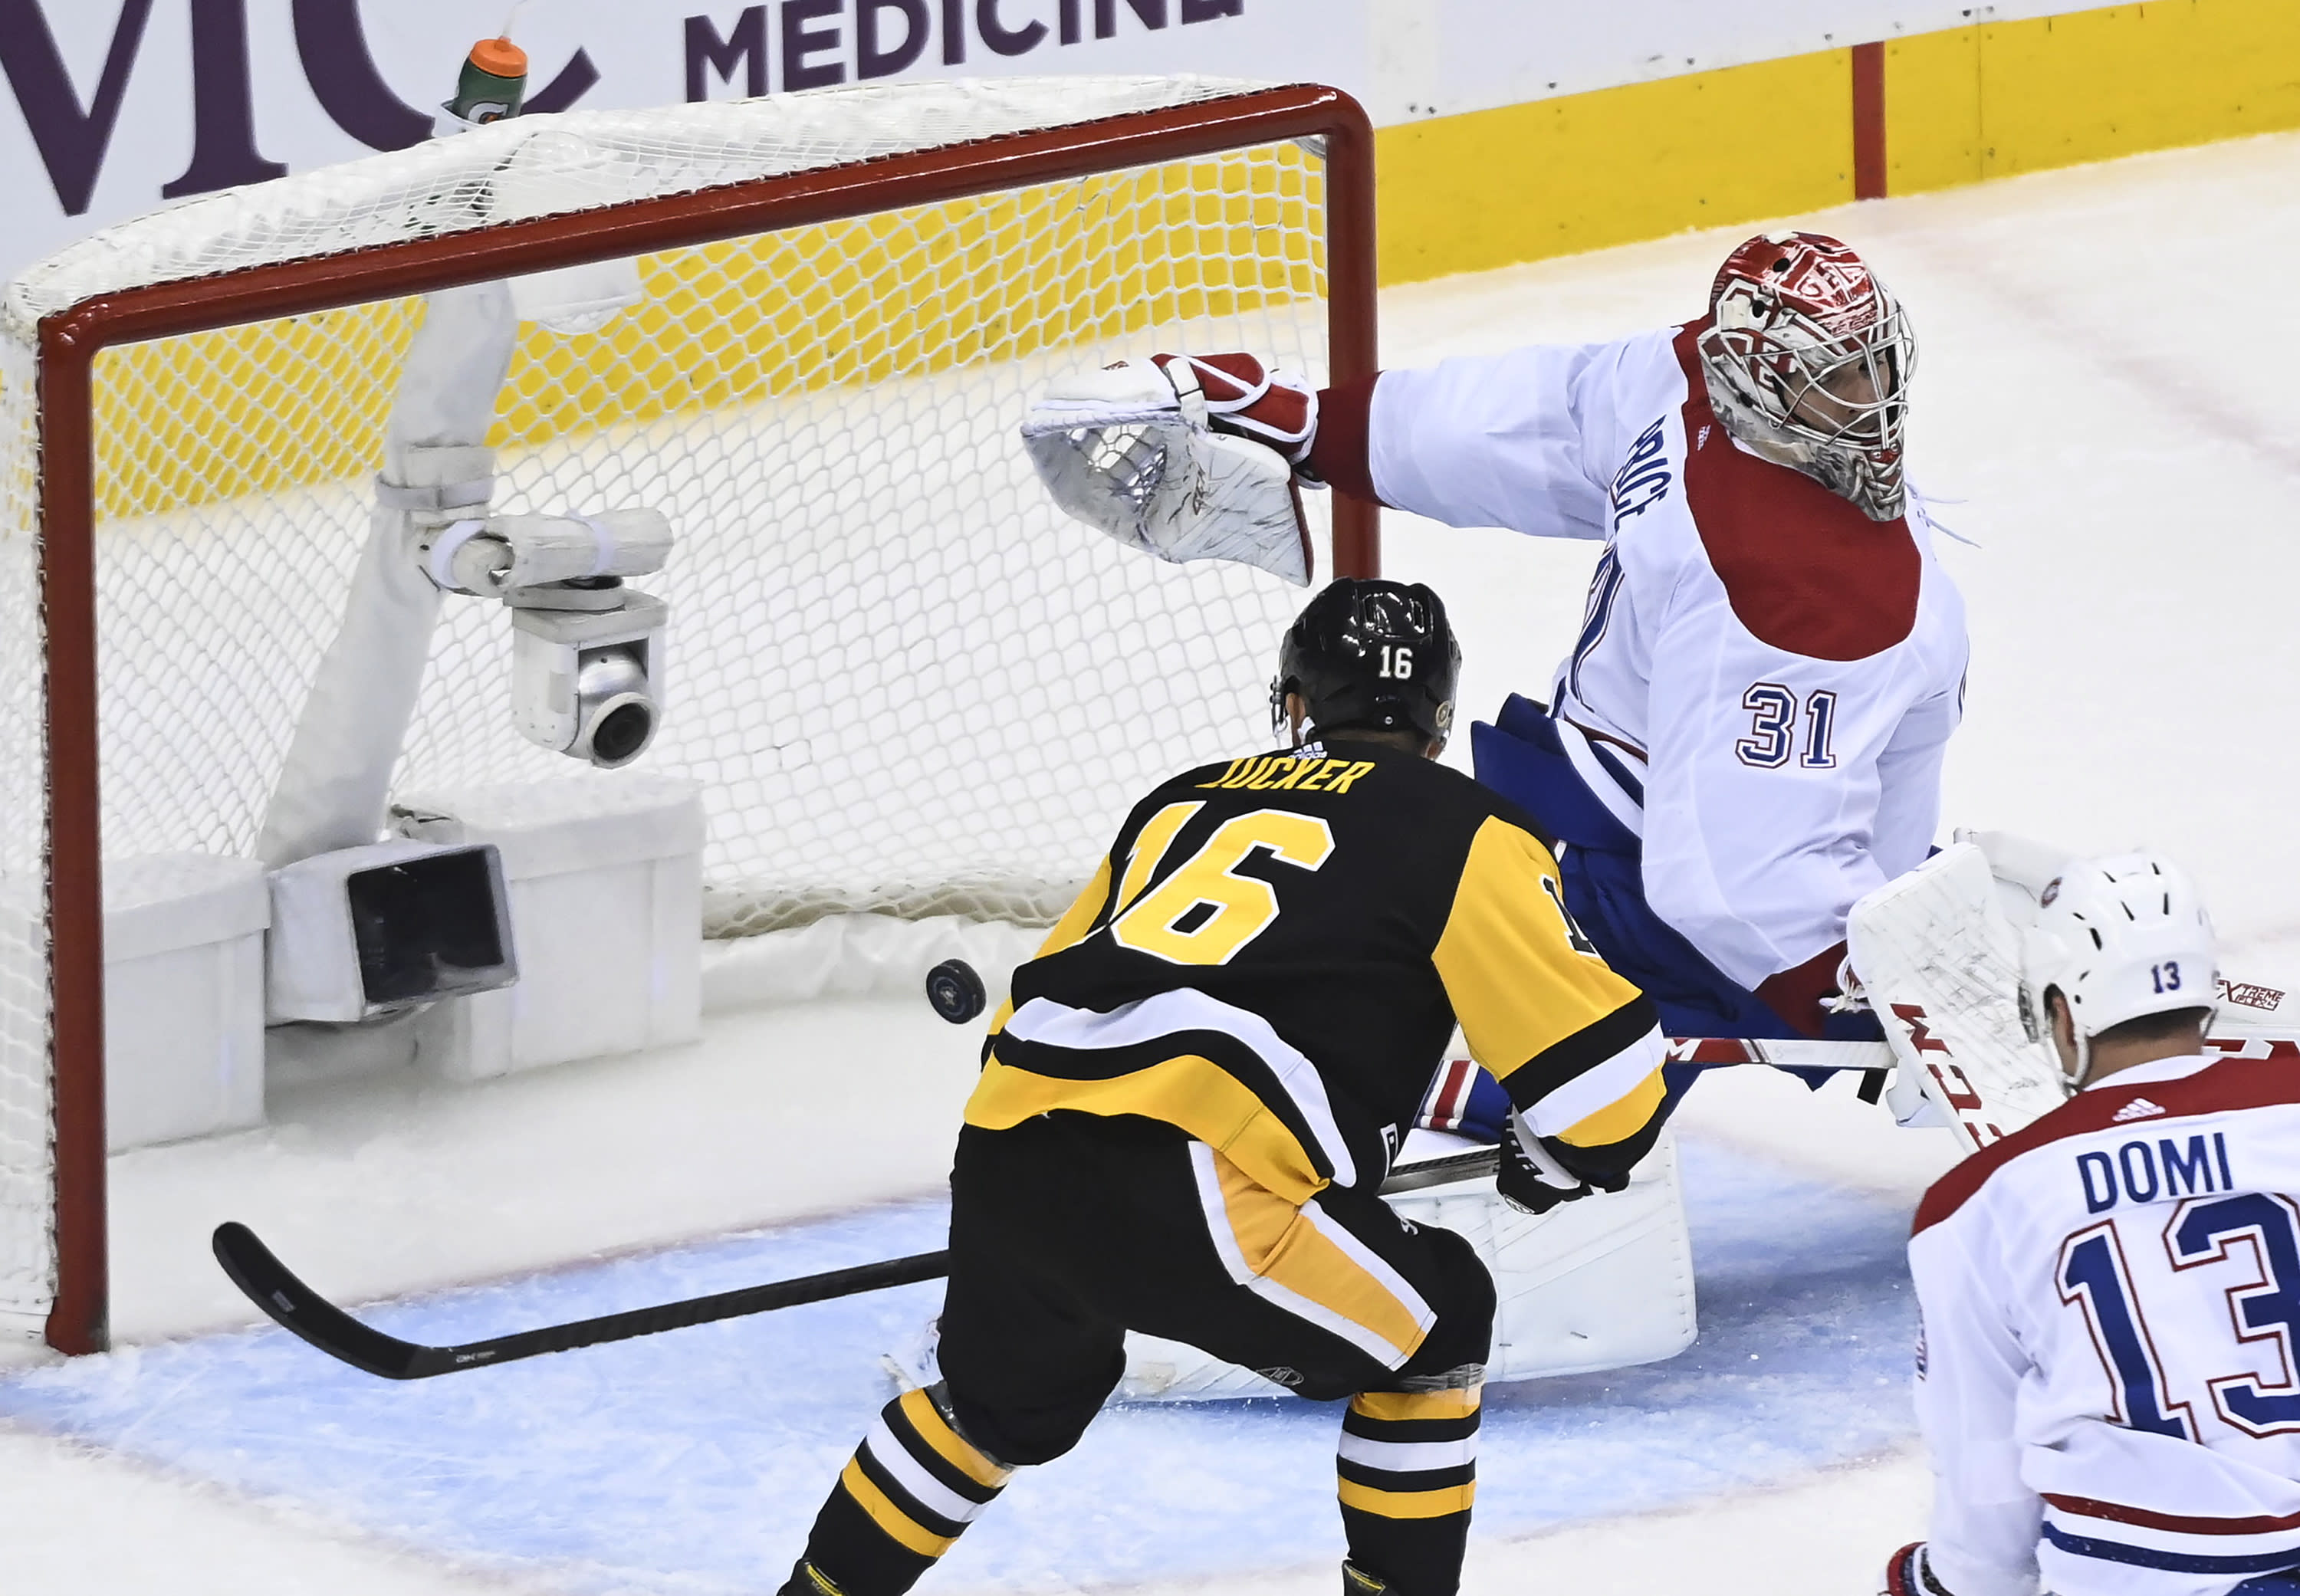 Pittsburgh Penguins left wing Jason Zucker (16) scores past Montreal Canadiens goaltender Carey Price (31) during the third period of an NHL hockey playoff game Monday, Aug. 3, 2020, in Toronto. (Nathan Denette/The Canadian Press via AP)